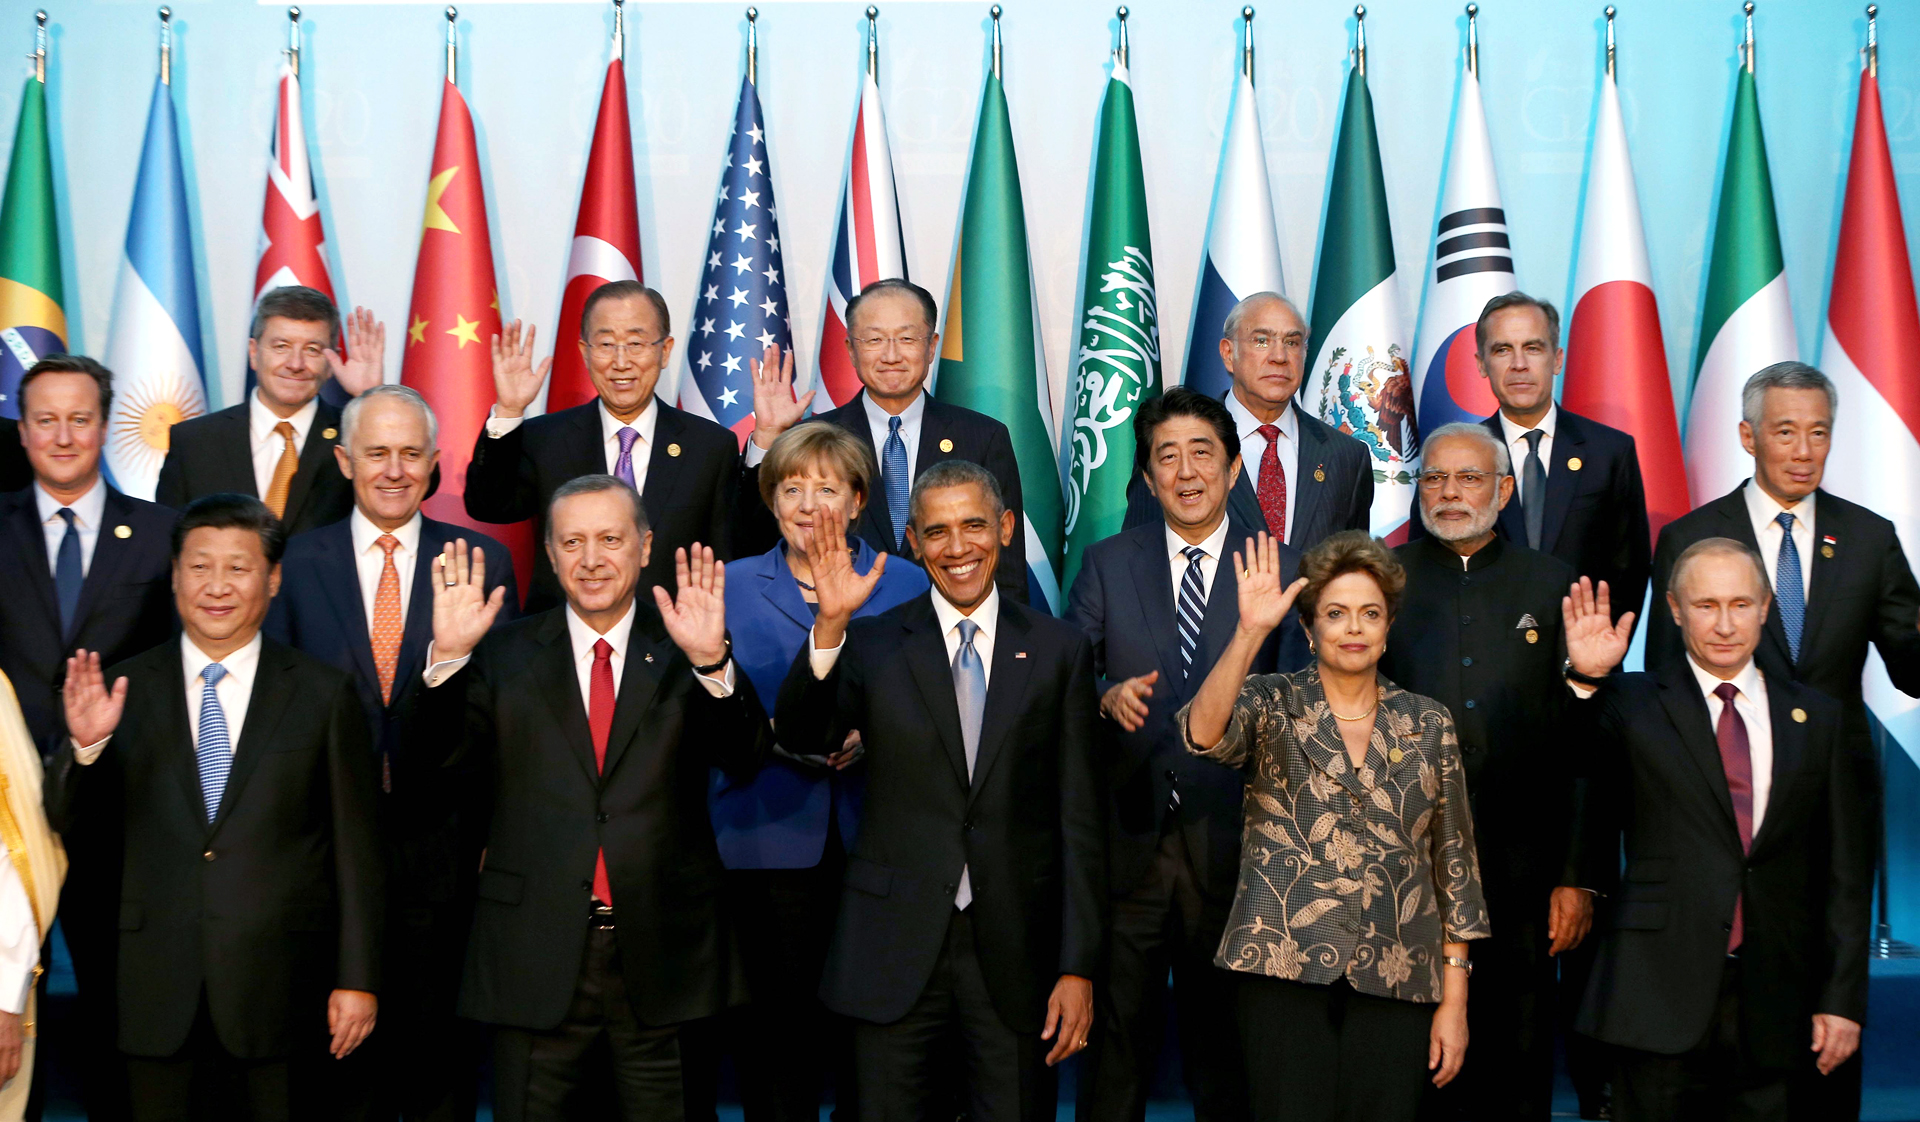 (Front row L-R) Chinese President Xi Jinping, Turkish President Recep Tayyip Erdogan, US President Barack Obama, Brazilian President Dilma Rousseff, Russian President Vladimir Putin, (2nd Row L-R) Australian Prime Minister Malcolm Turnbull, German Chancellor Angela Merkel, Japanese Prime Minister Shinzo Abe, Indian Prime Minister Narendra Modi, Singapore's Prime Minister Lee Hsien Loong, (3rd row L-R) Guy Ryder, Director General of International Labour Organisation (ILO), UN Secretary-General Ban Ki-moon, World Bank President Jim Yong Kim, Angel Gurria (L), Secretary-General of Organization for Economic Co-operation and Development (OECD), Bank of England Governor and Financial Stability Board (FSB) Chairman Mark Carney pose for a family photo during the G20 Turkey Leaders Summit on November 15, 2015 in Antalya, Turkey. AFP PHOTO / POOL / BERK OZKAN